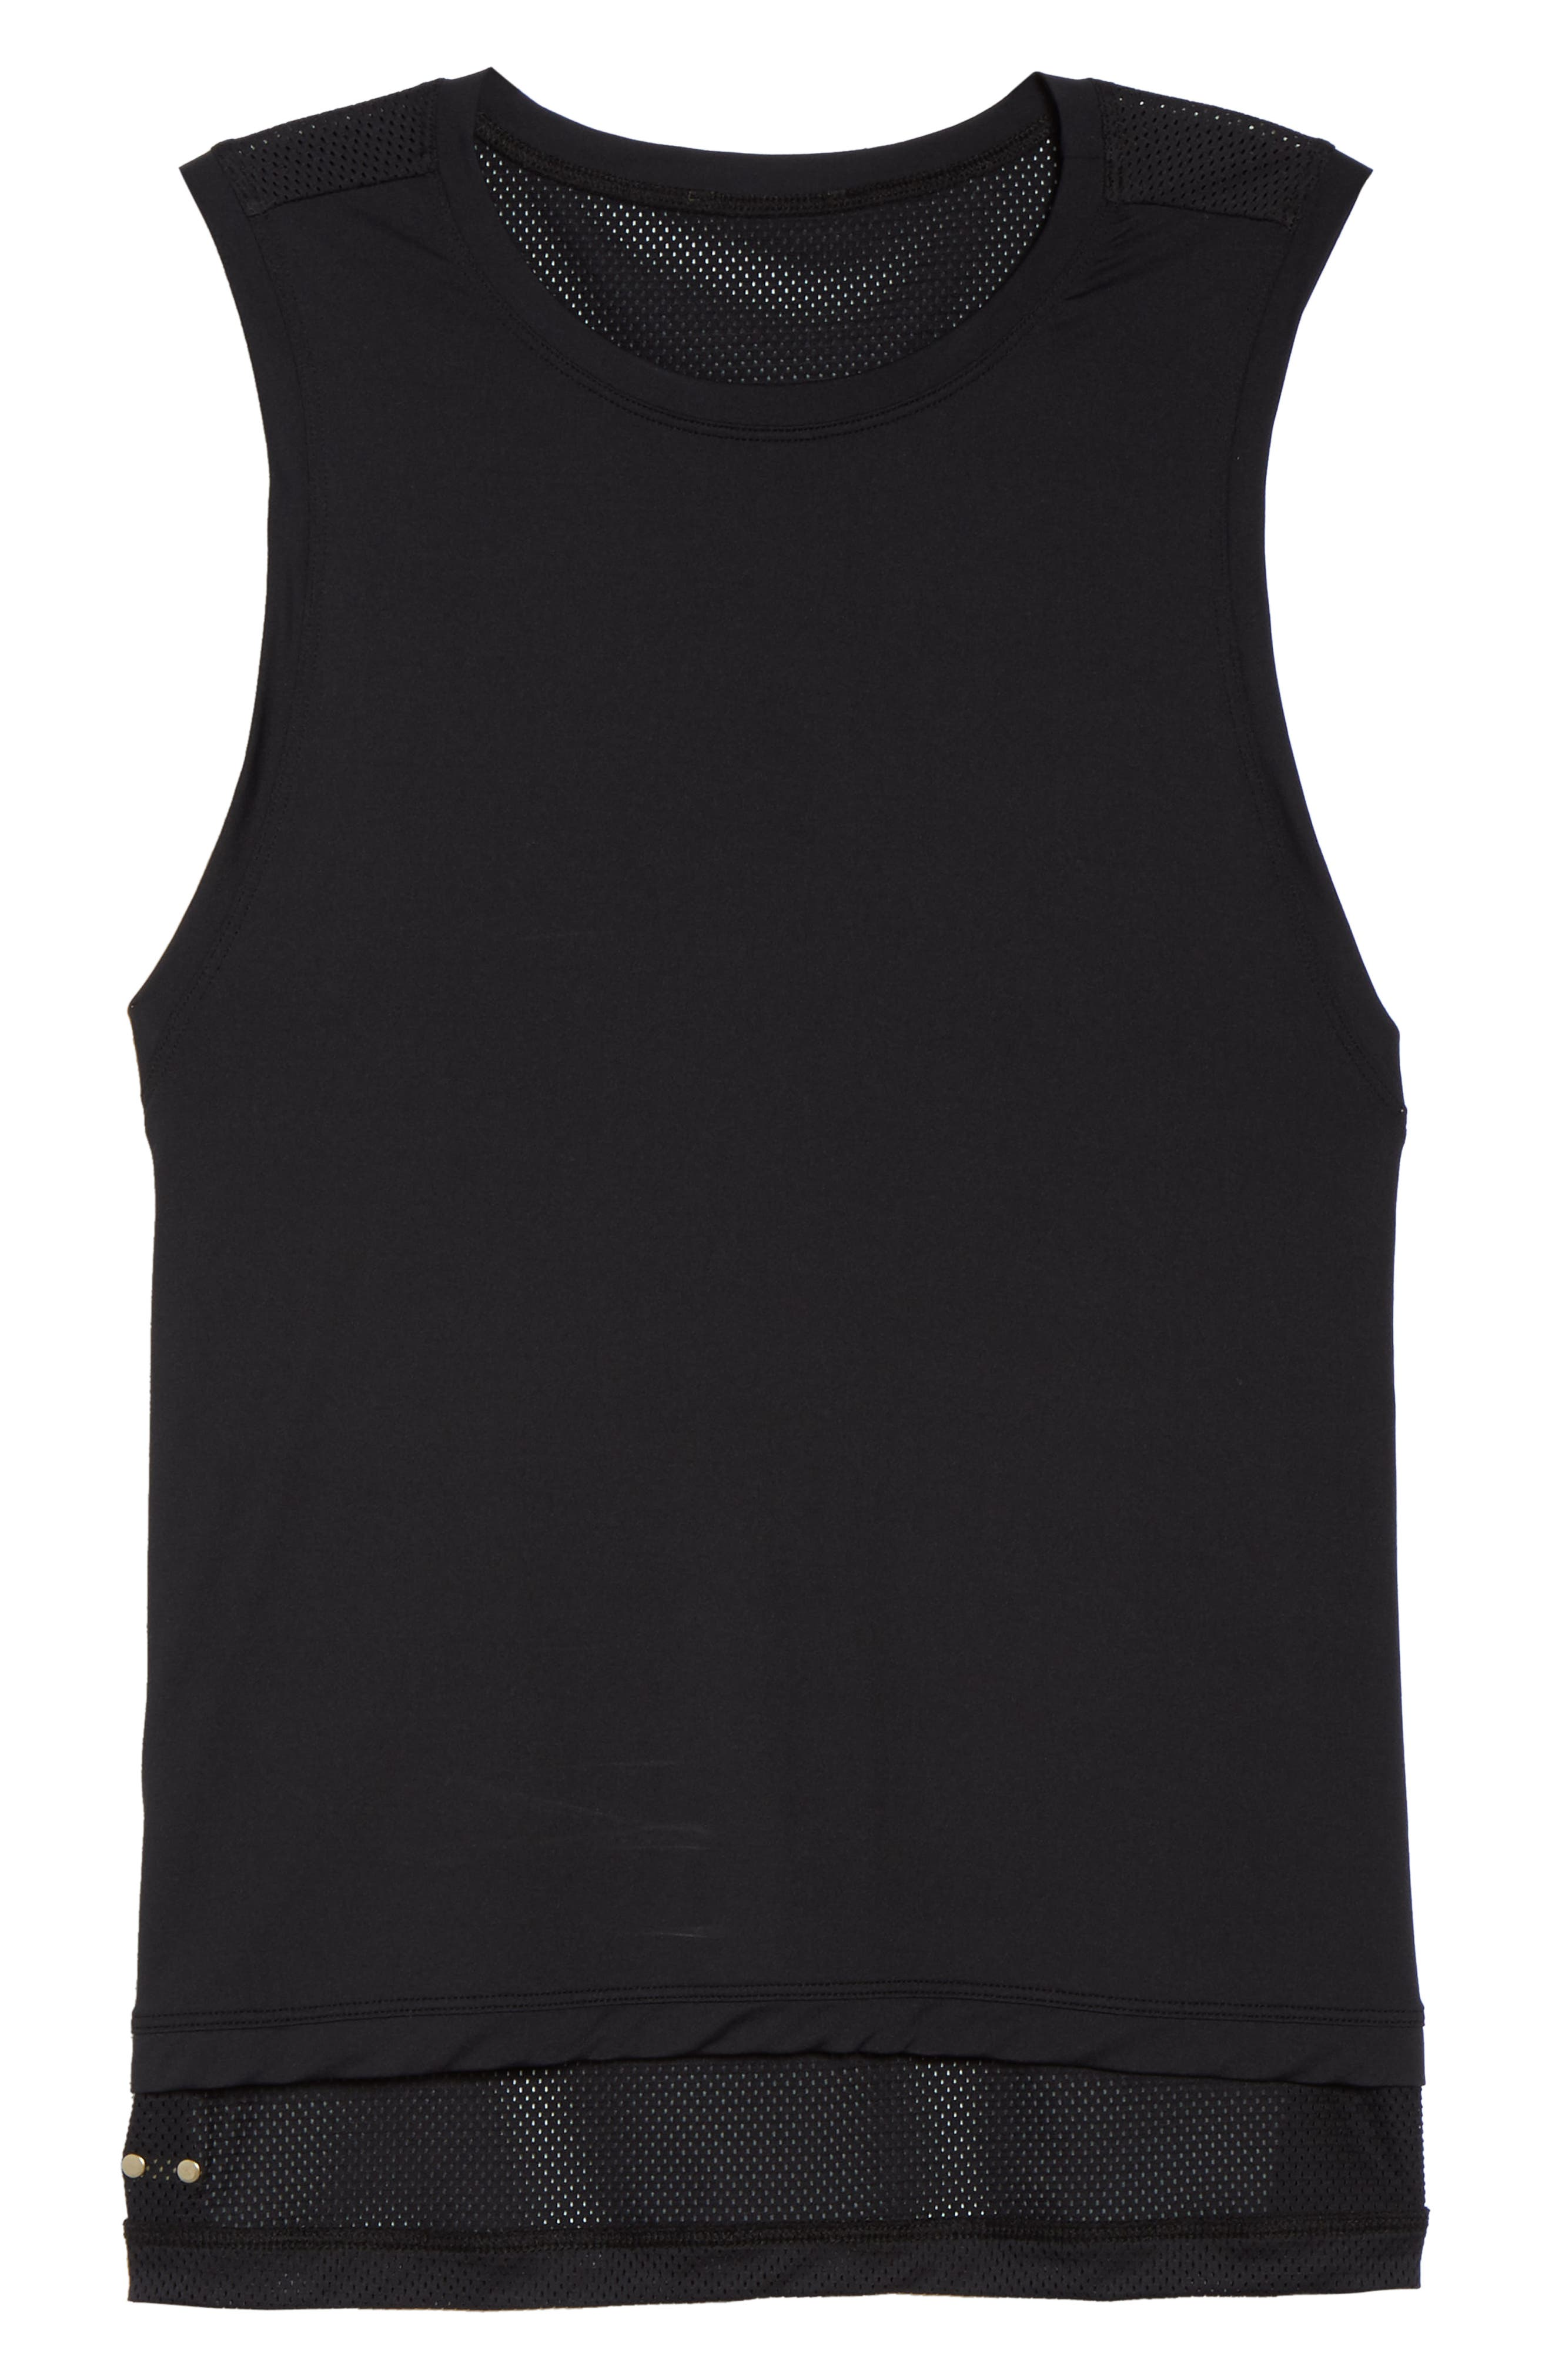 Skimm Mesh Back Tank,                             Alternate thumbnail 6, color,                             001